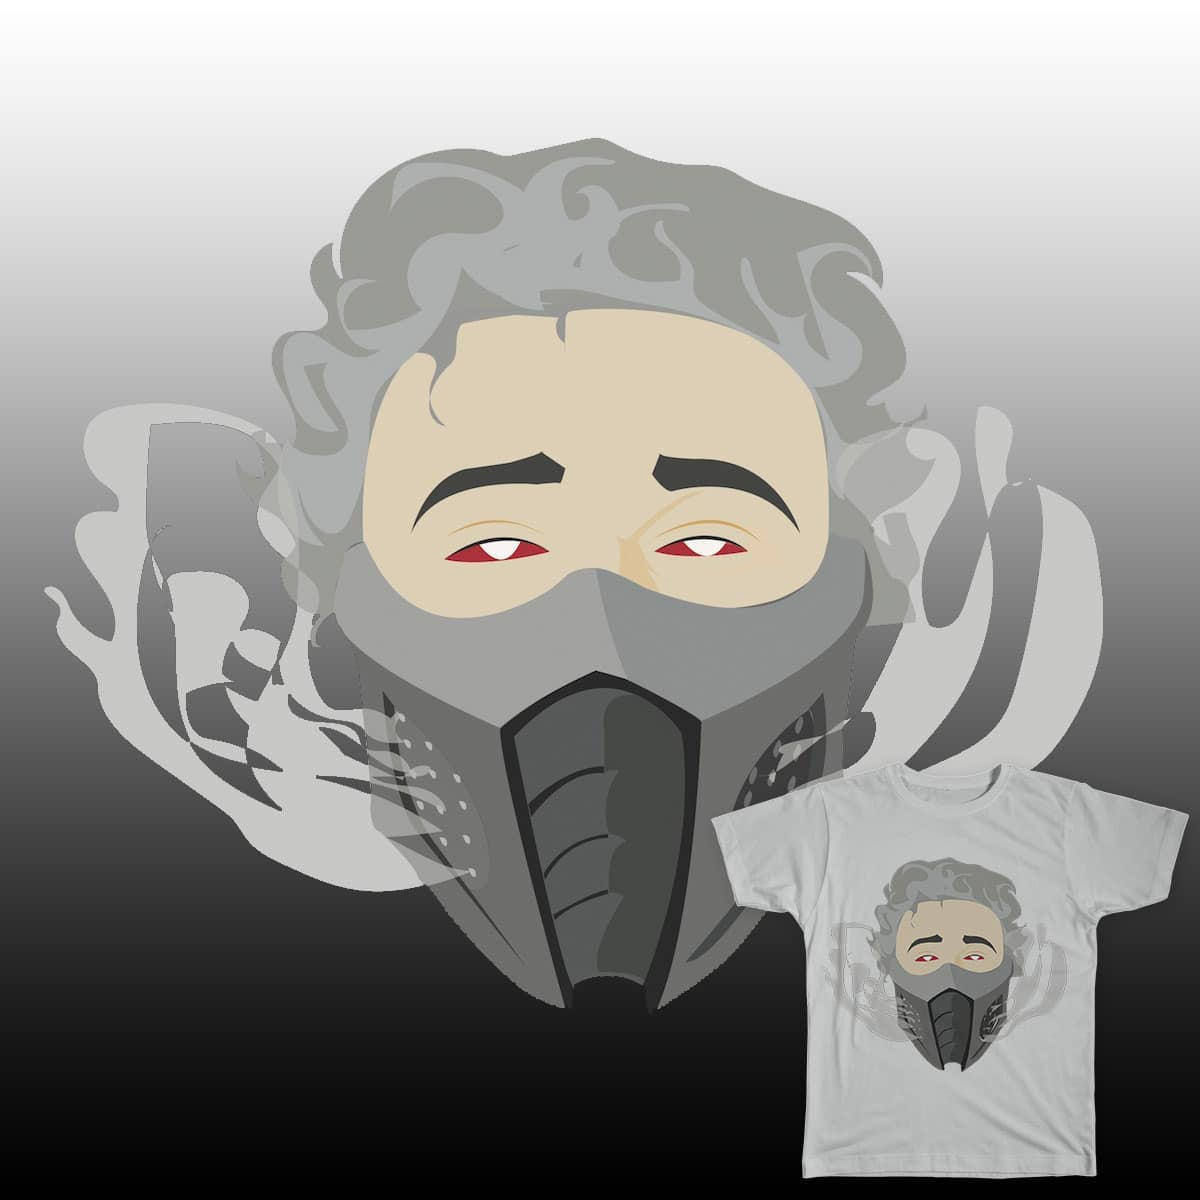 SMOKE by Handzon_Artise on Threadless